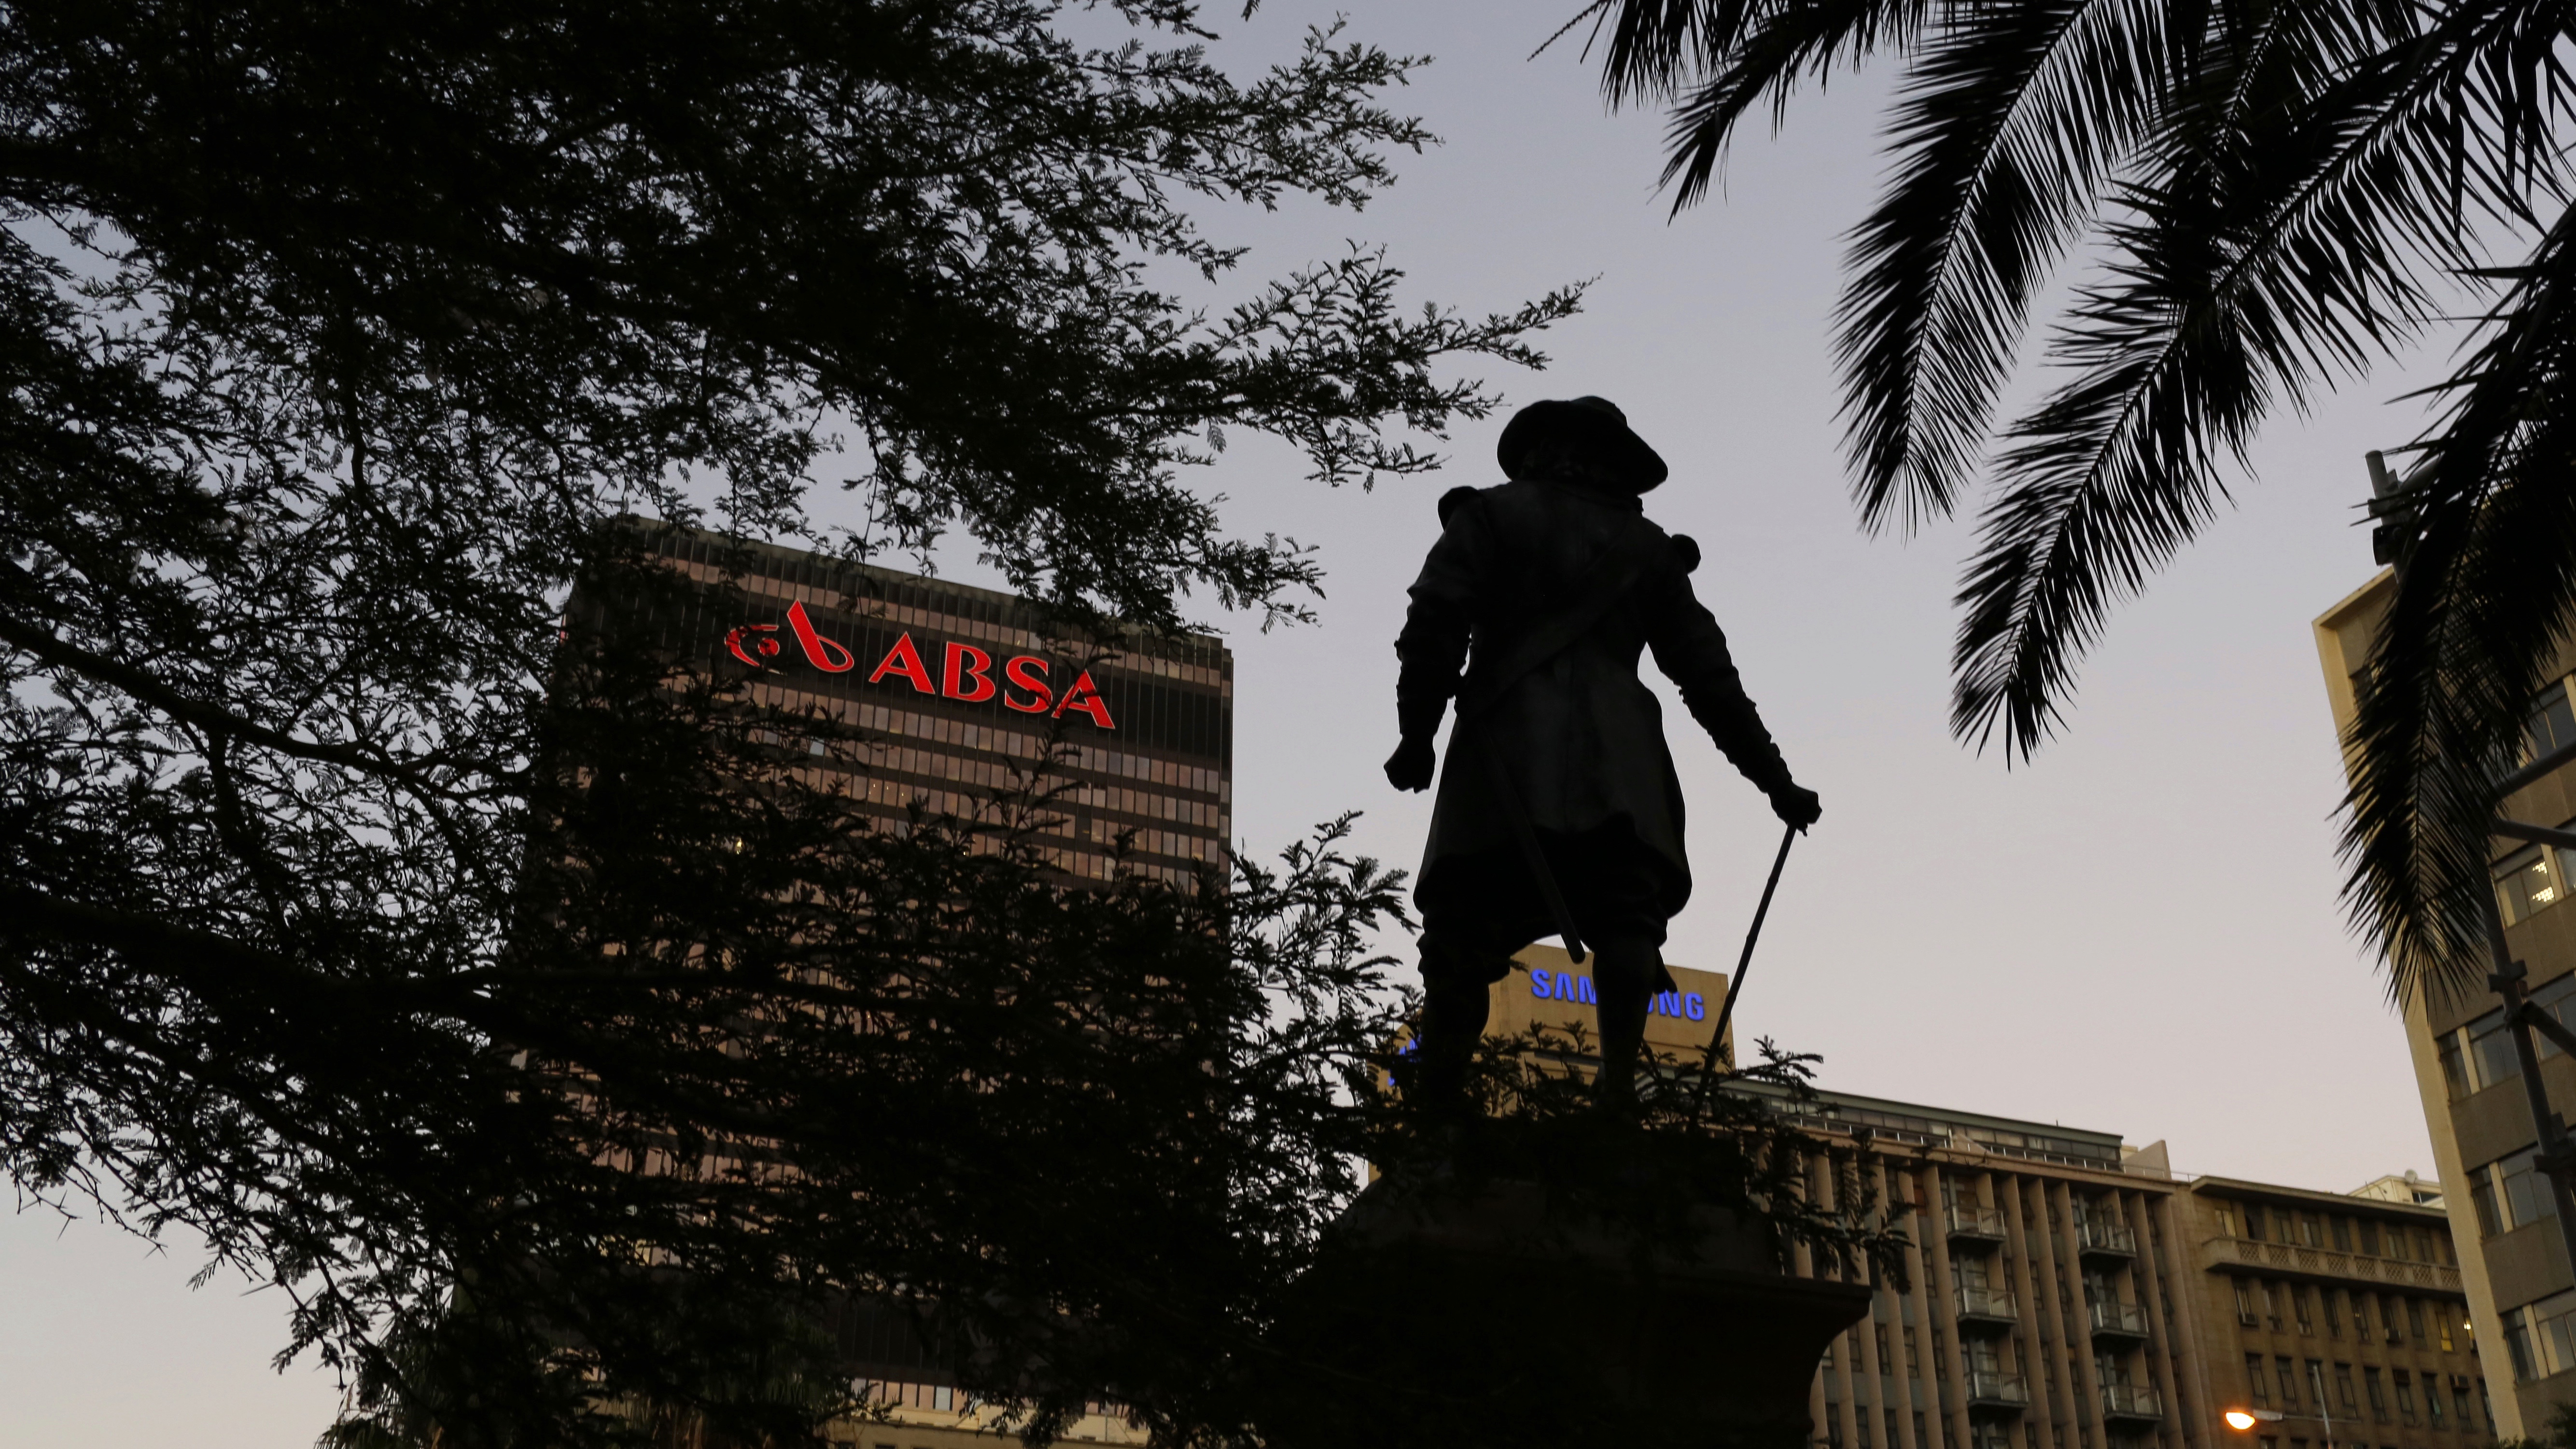 A statue of colonial Dutch governor Jan van Riebeeck stands before the headquarters of Barclay's South African subsidiary Absa bank in Cape Town, March 1, 2016.  Barclays Plc reported a 2 percent fall in full-year adjusted pre-tax profit on Tuesday and unveiled plans to simplify its UK & international operations to boost returns and cut costs, primarily by exiting its historic African business. REUTERS/Mike Hutchings - RTS8P82